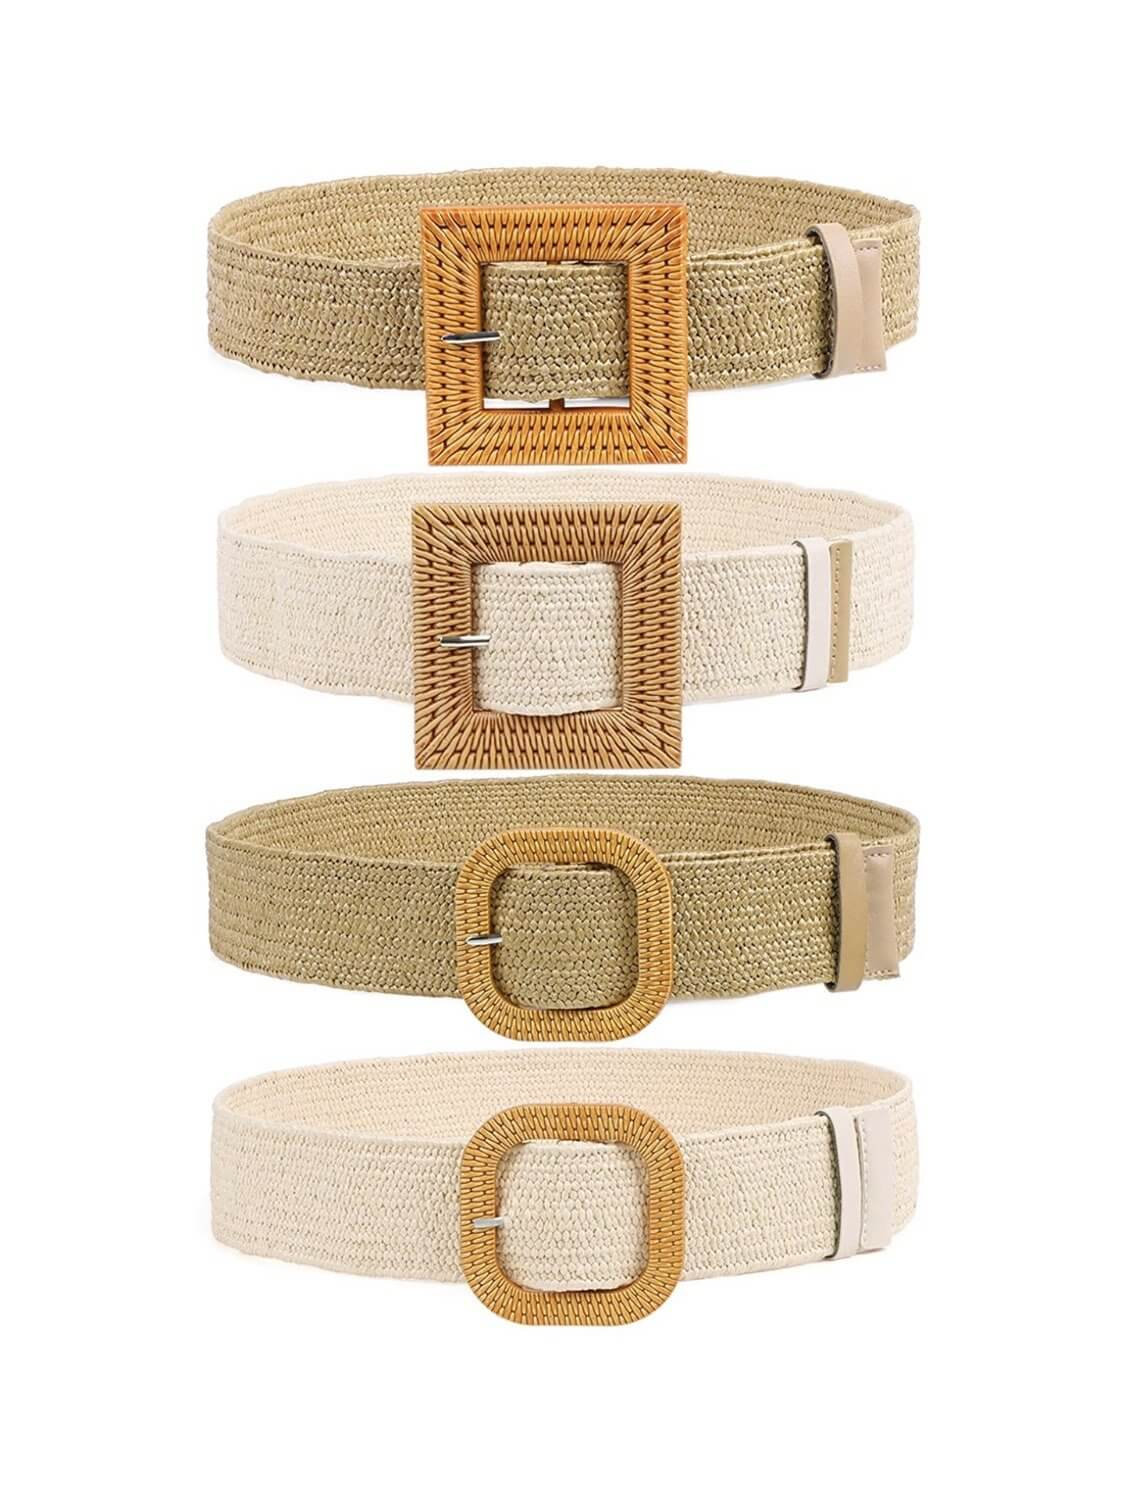 boho belts in colors and models Square Camel, Square Beige, Round Camel and Round Beige